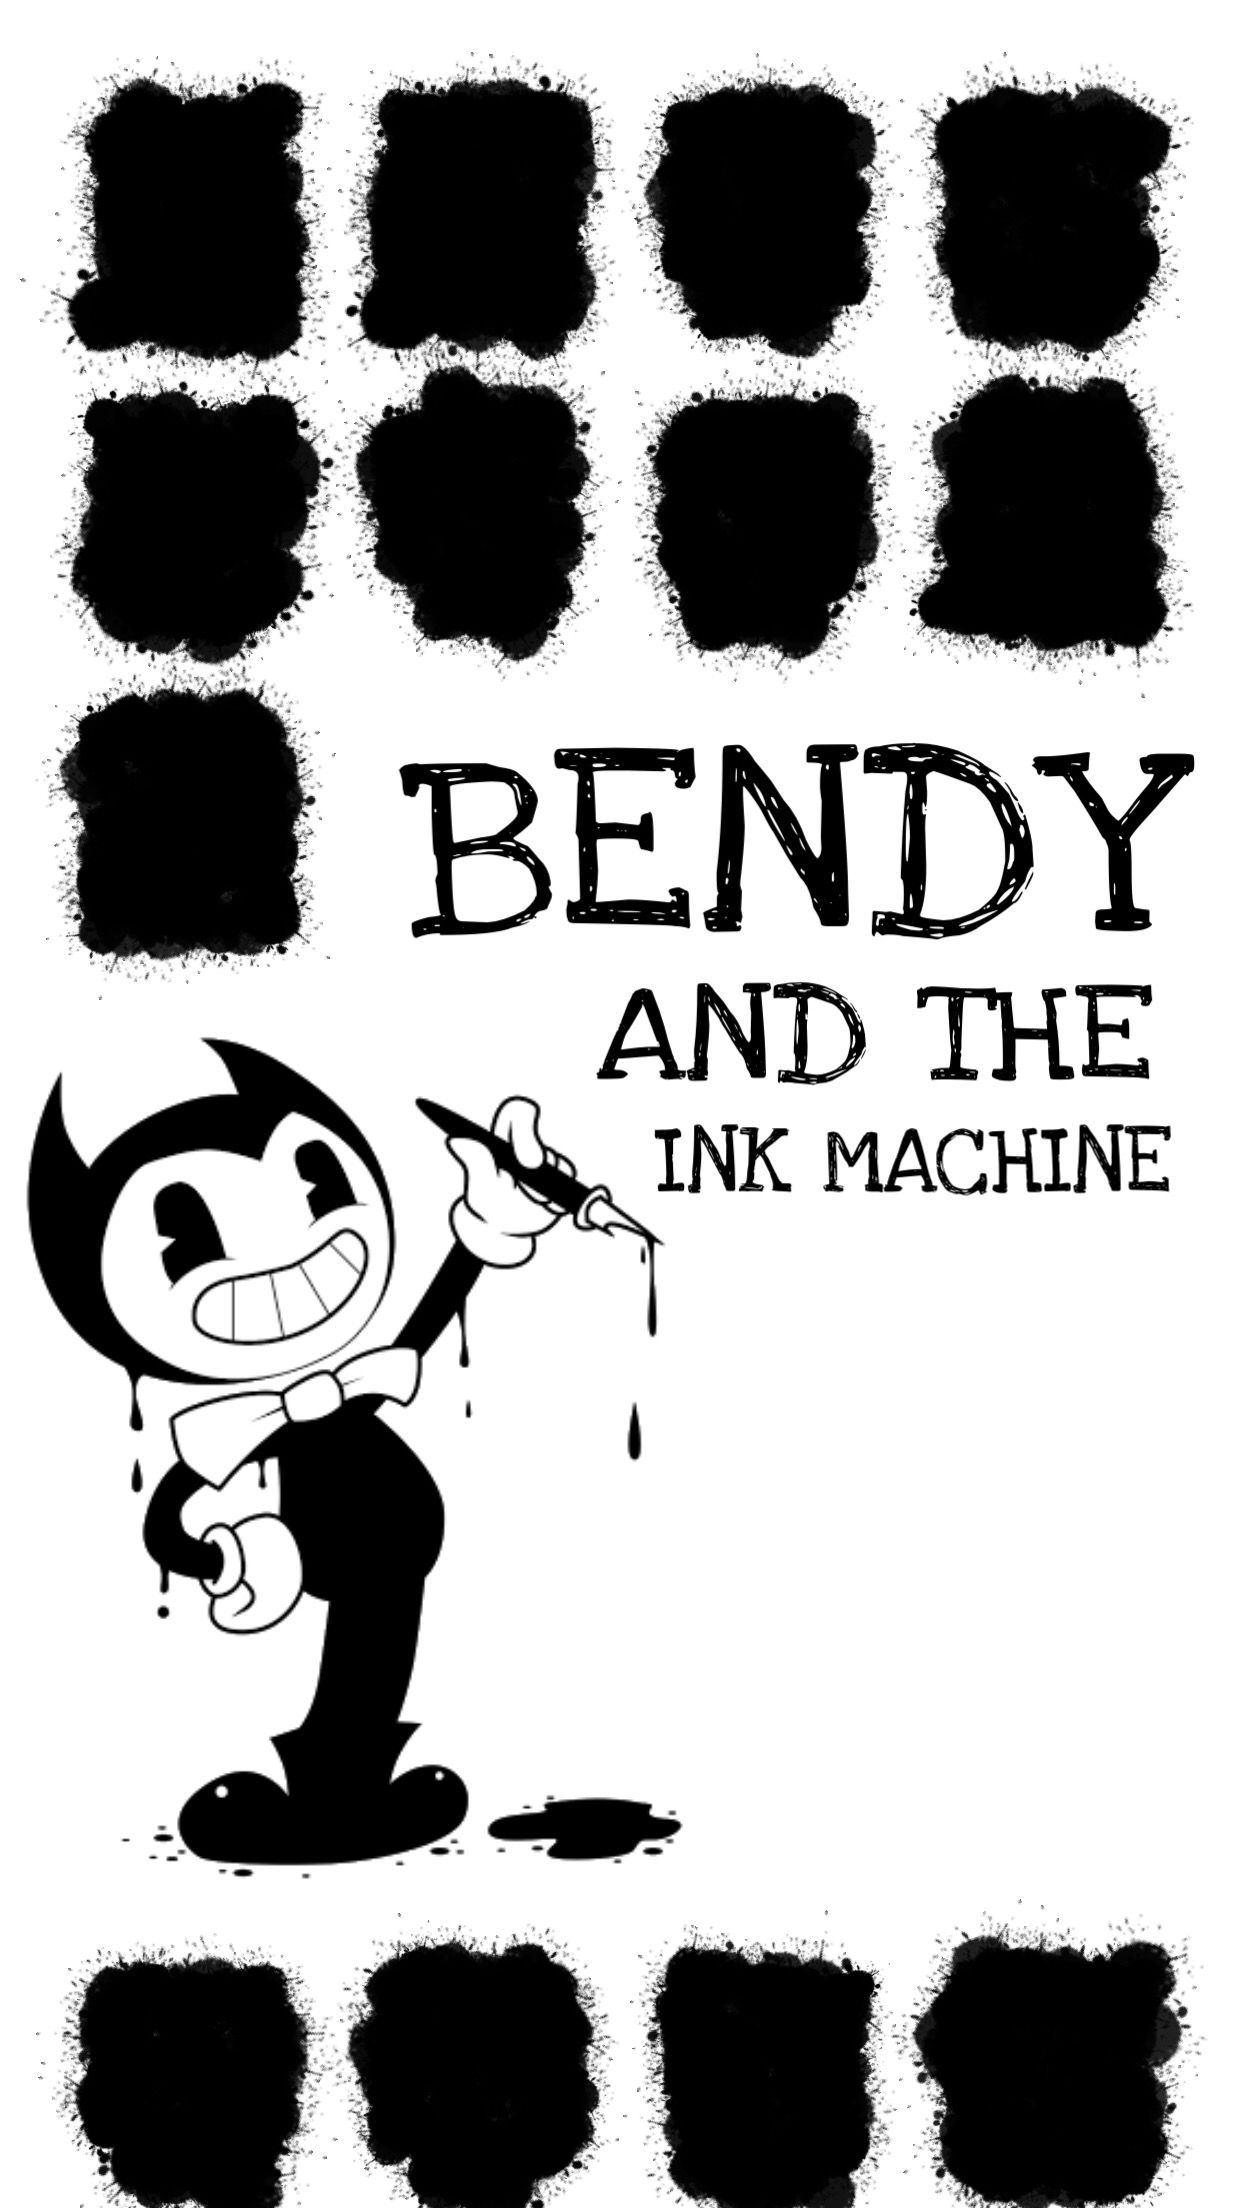 Iphone Wallpaper Bendy Creado Por P E N T A With Images Bendy